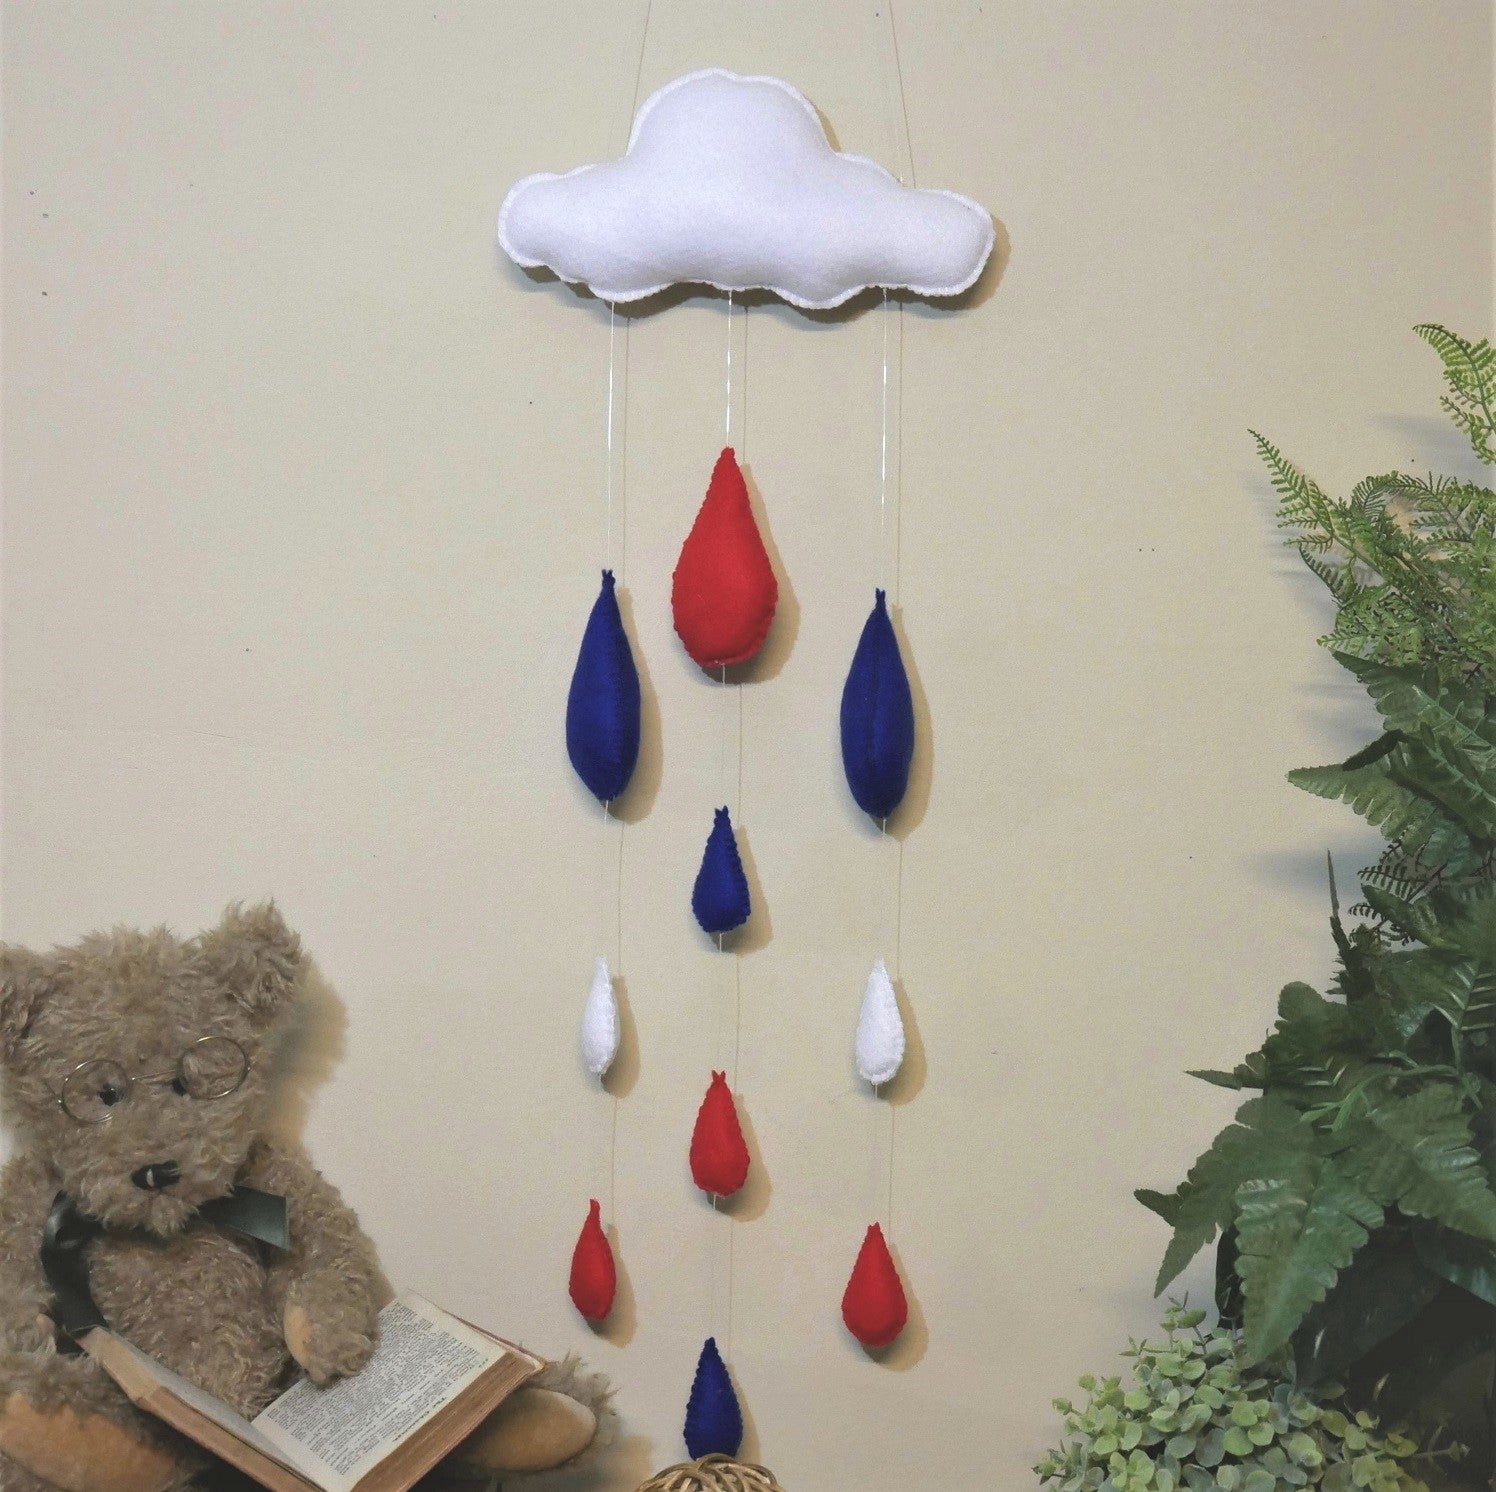 Raindrops-Nursery-Mobile-Nchanted-Gifts